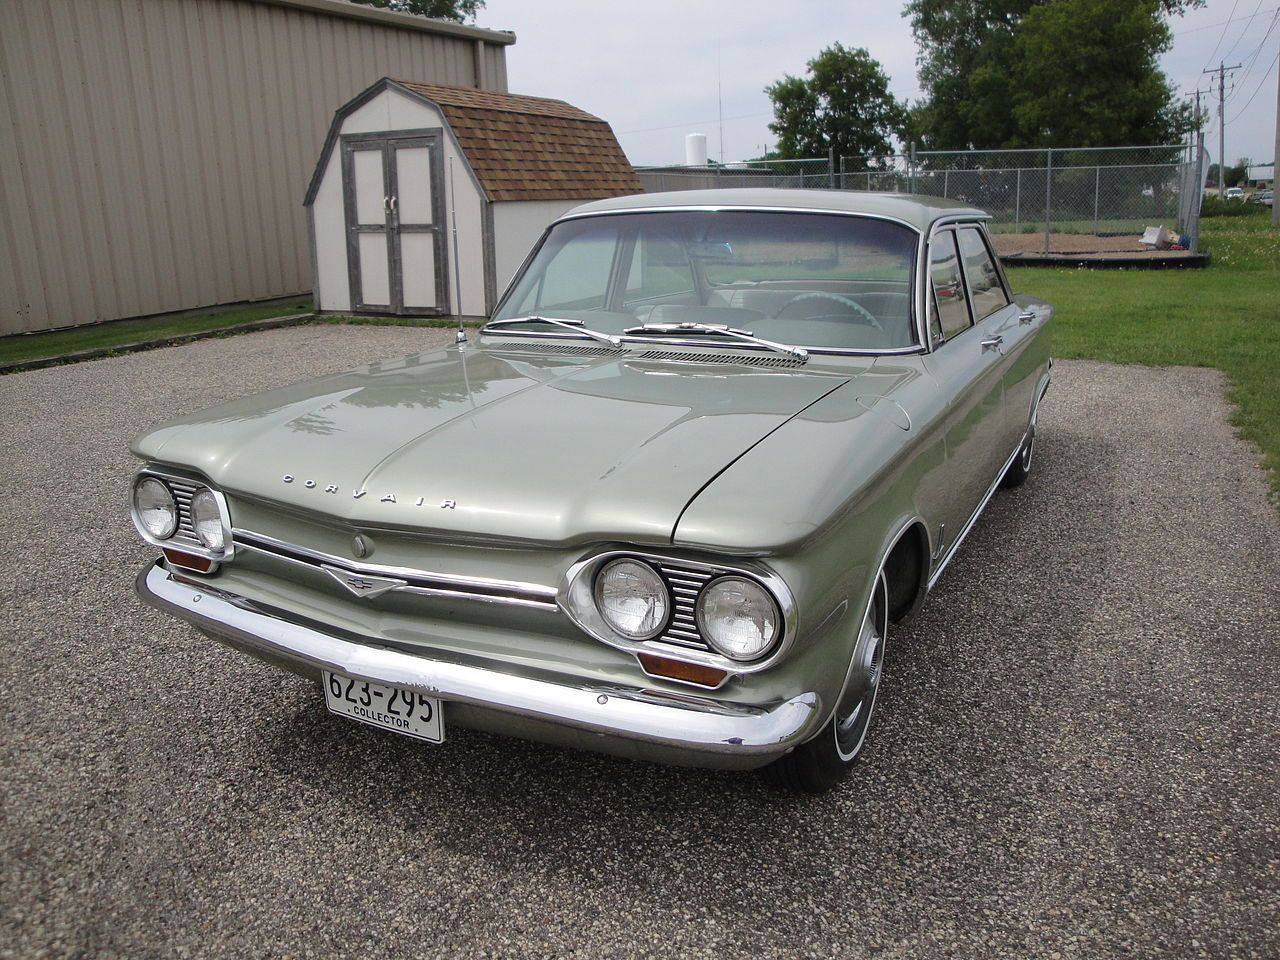 Valley Chevy Phoenix - Forgotten Chevrolets: Corvair